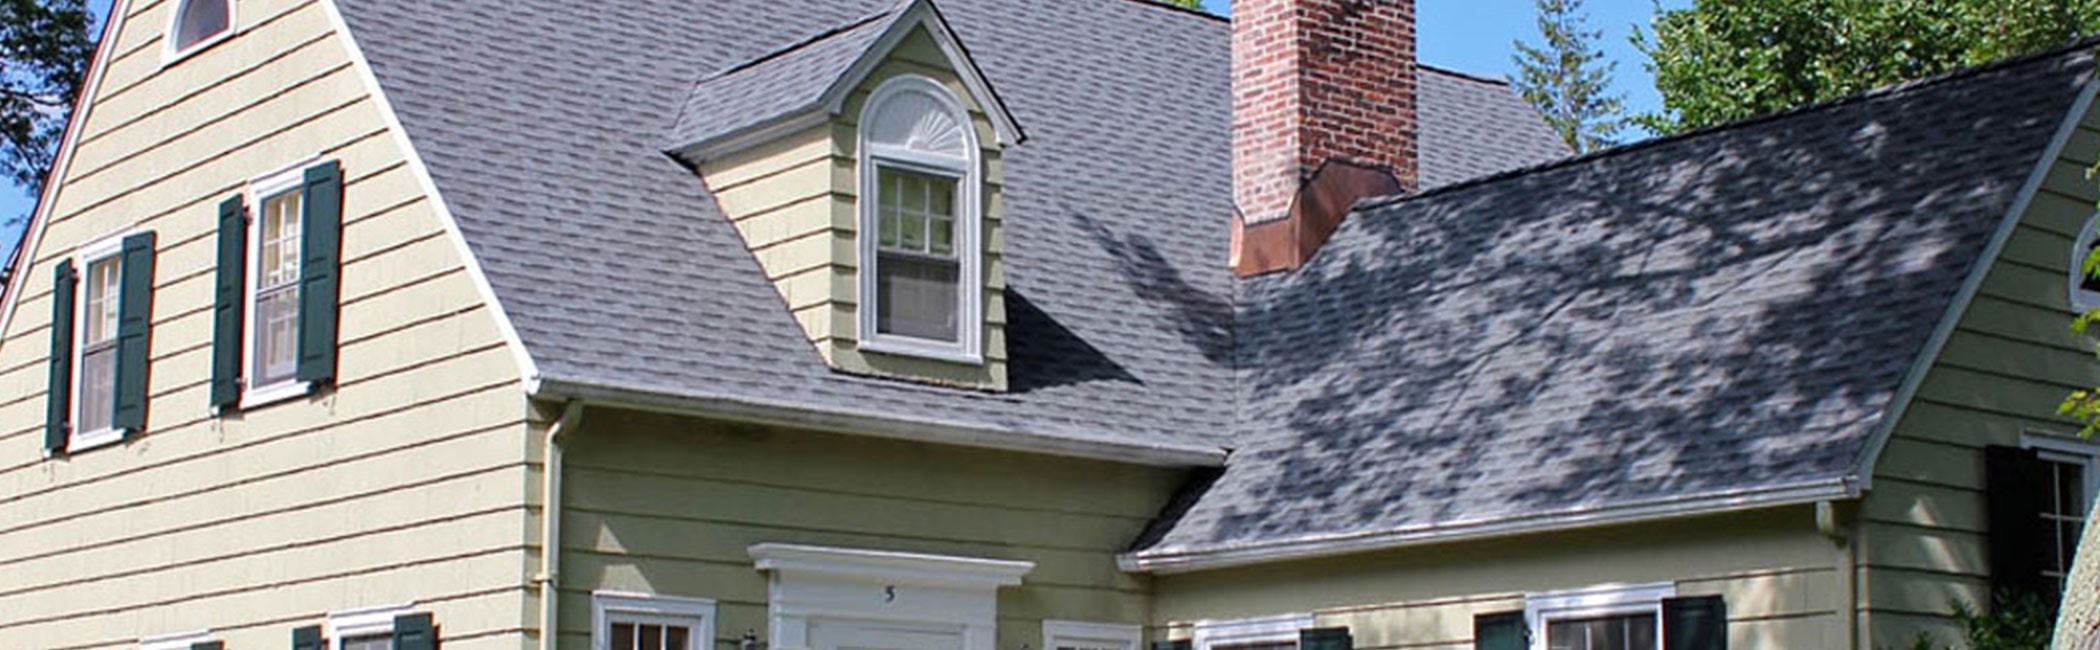 Residential Roofing: Top 5 Maintenance Tips for Spring